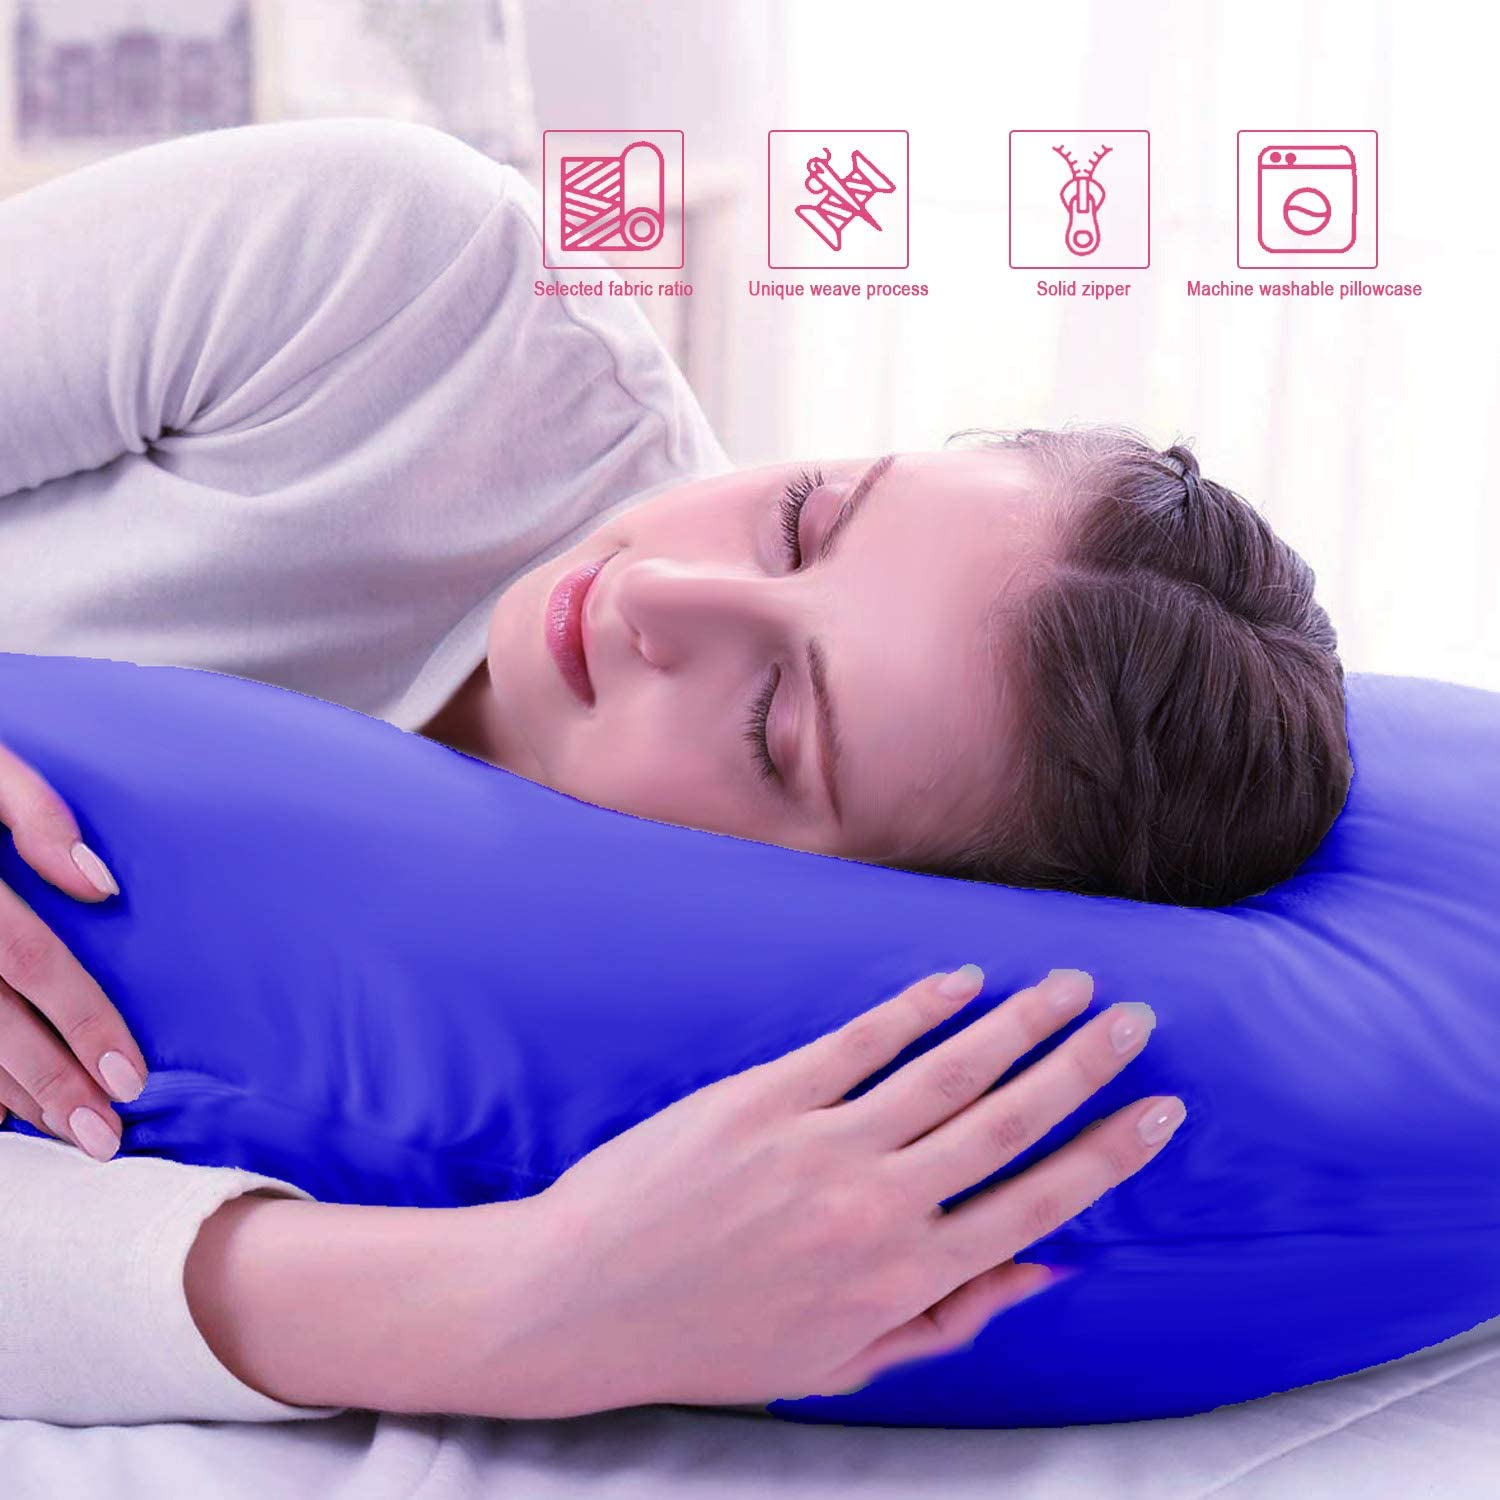 Legs Belly-Blue Hips ARyee Full Body Pregnancy Pillow,U-Shaped Body Pillow for Sleeping with Nursing Baby Design,Zipper Removable Cotton Cover,Support for Back